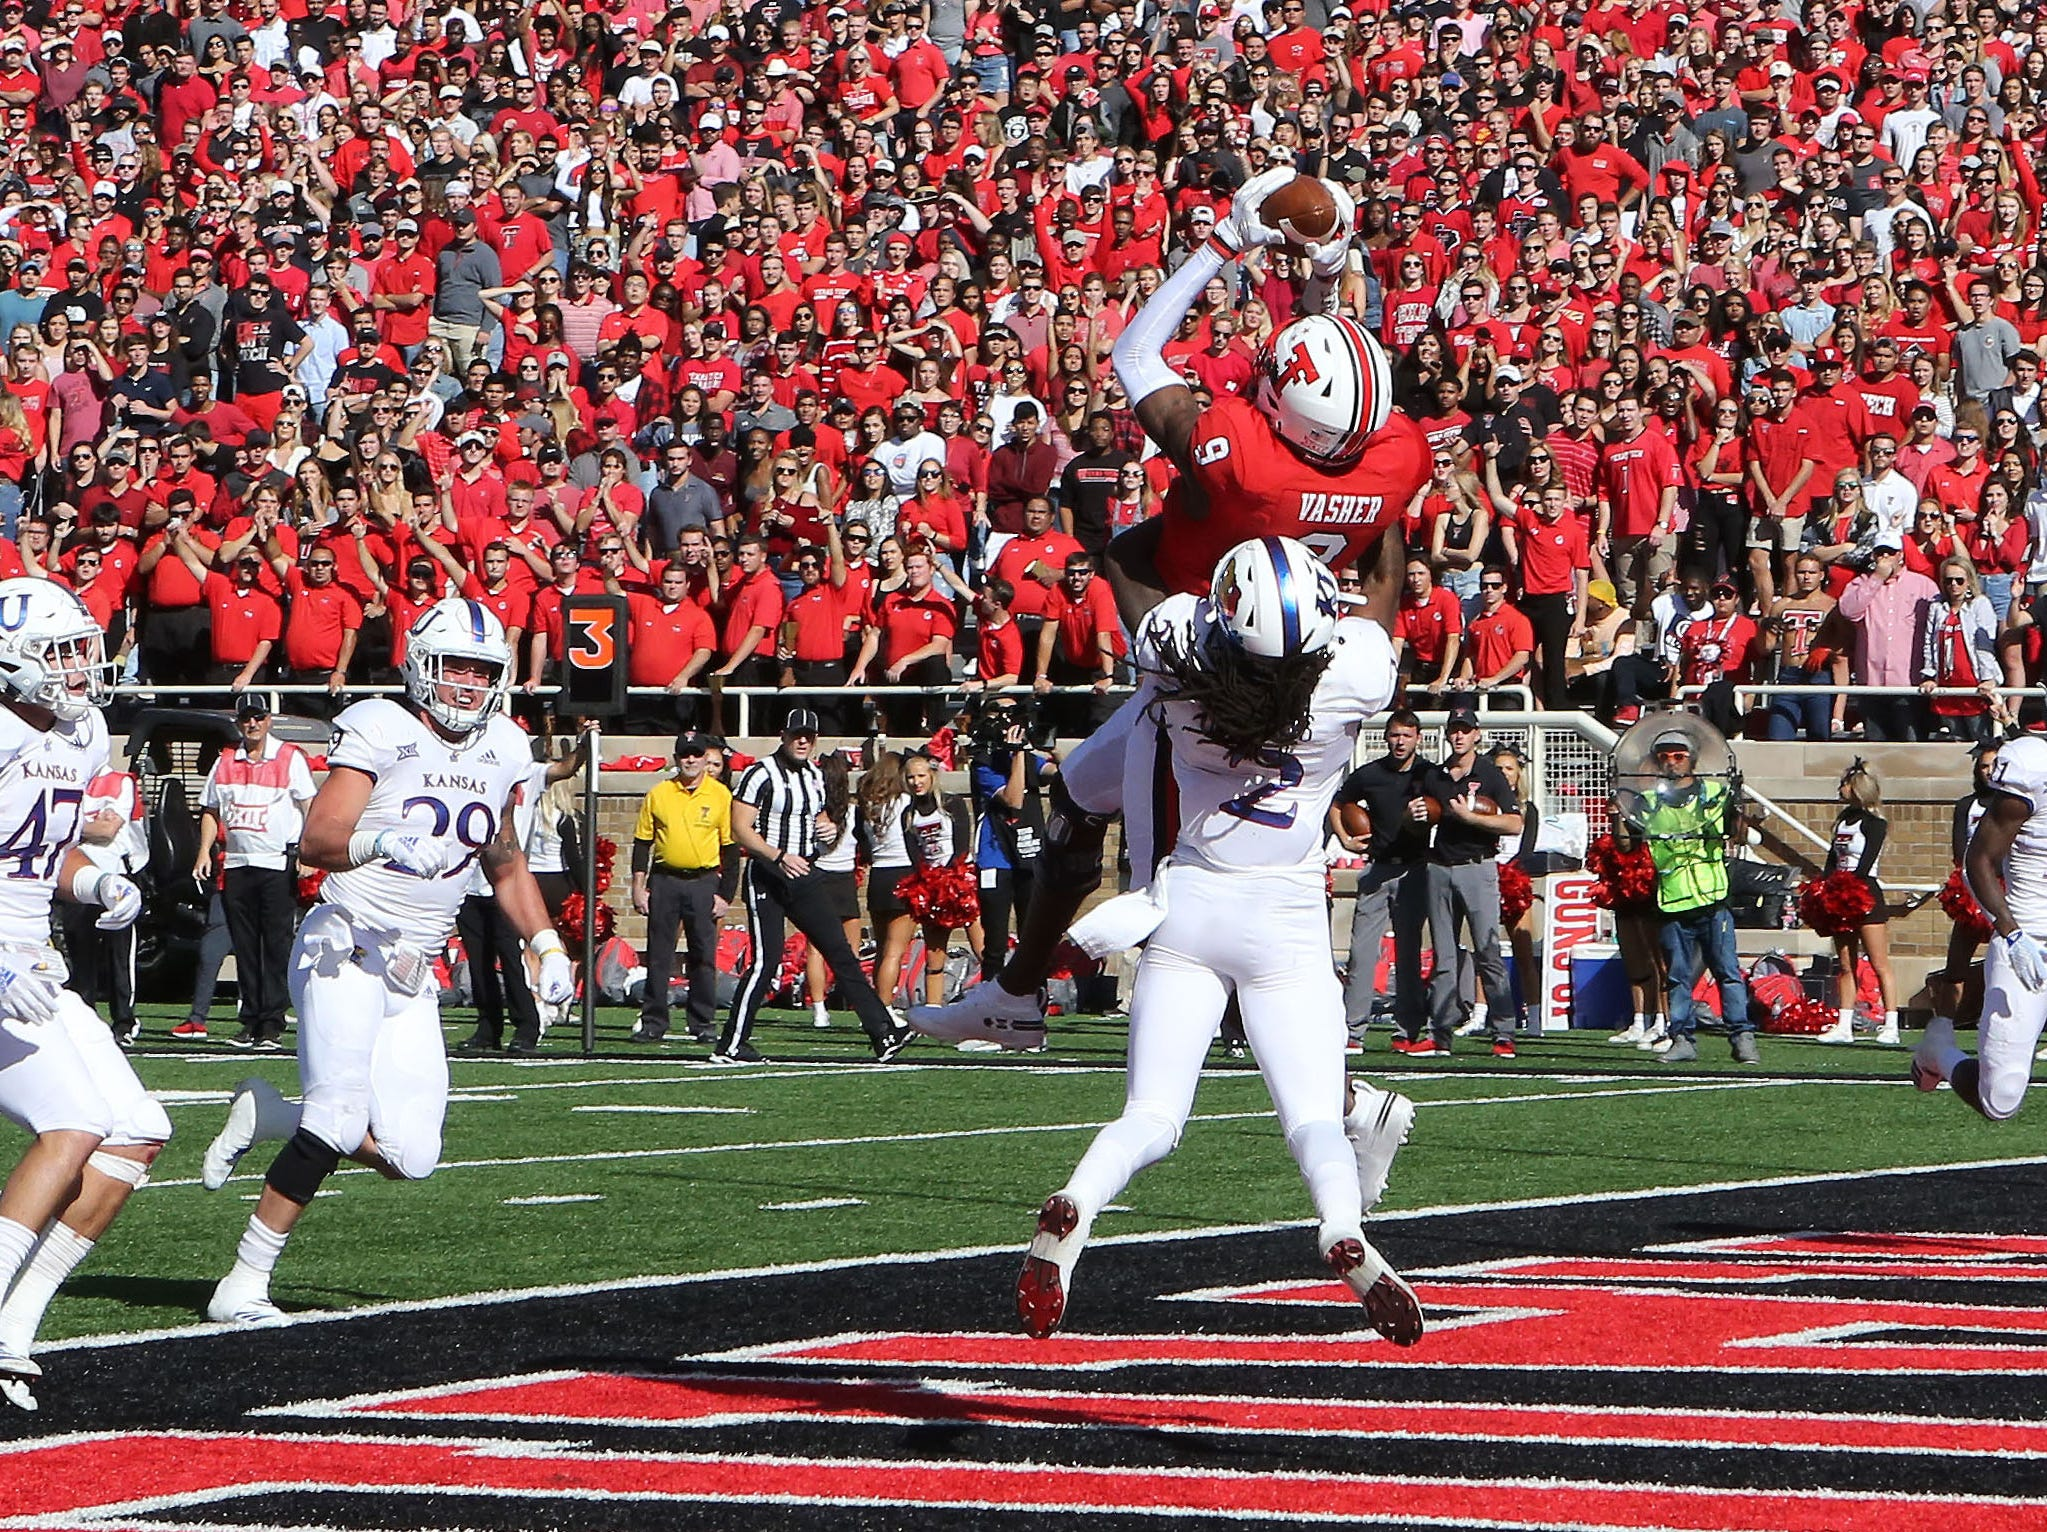 Texas Tech Red Raiders wide receiver TJ Vasher (9) catches a touchdown pass against Kansas Jayhawks defensive corner back Corione Harris (2) in the first half at Jones AT&T Stadium.